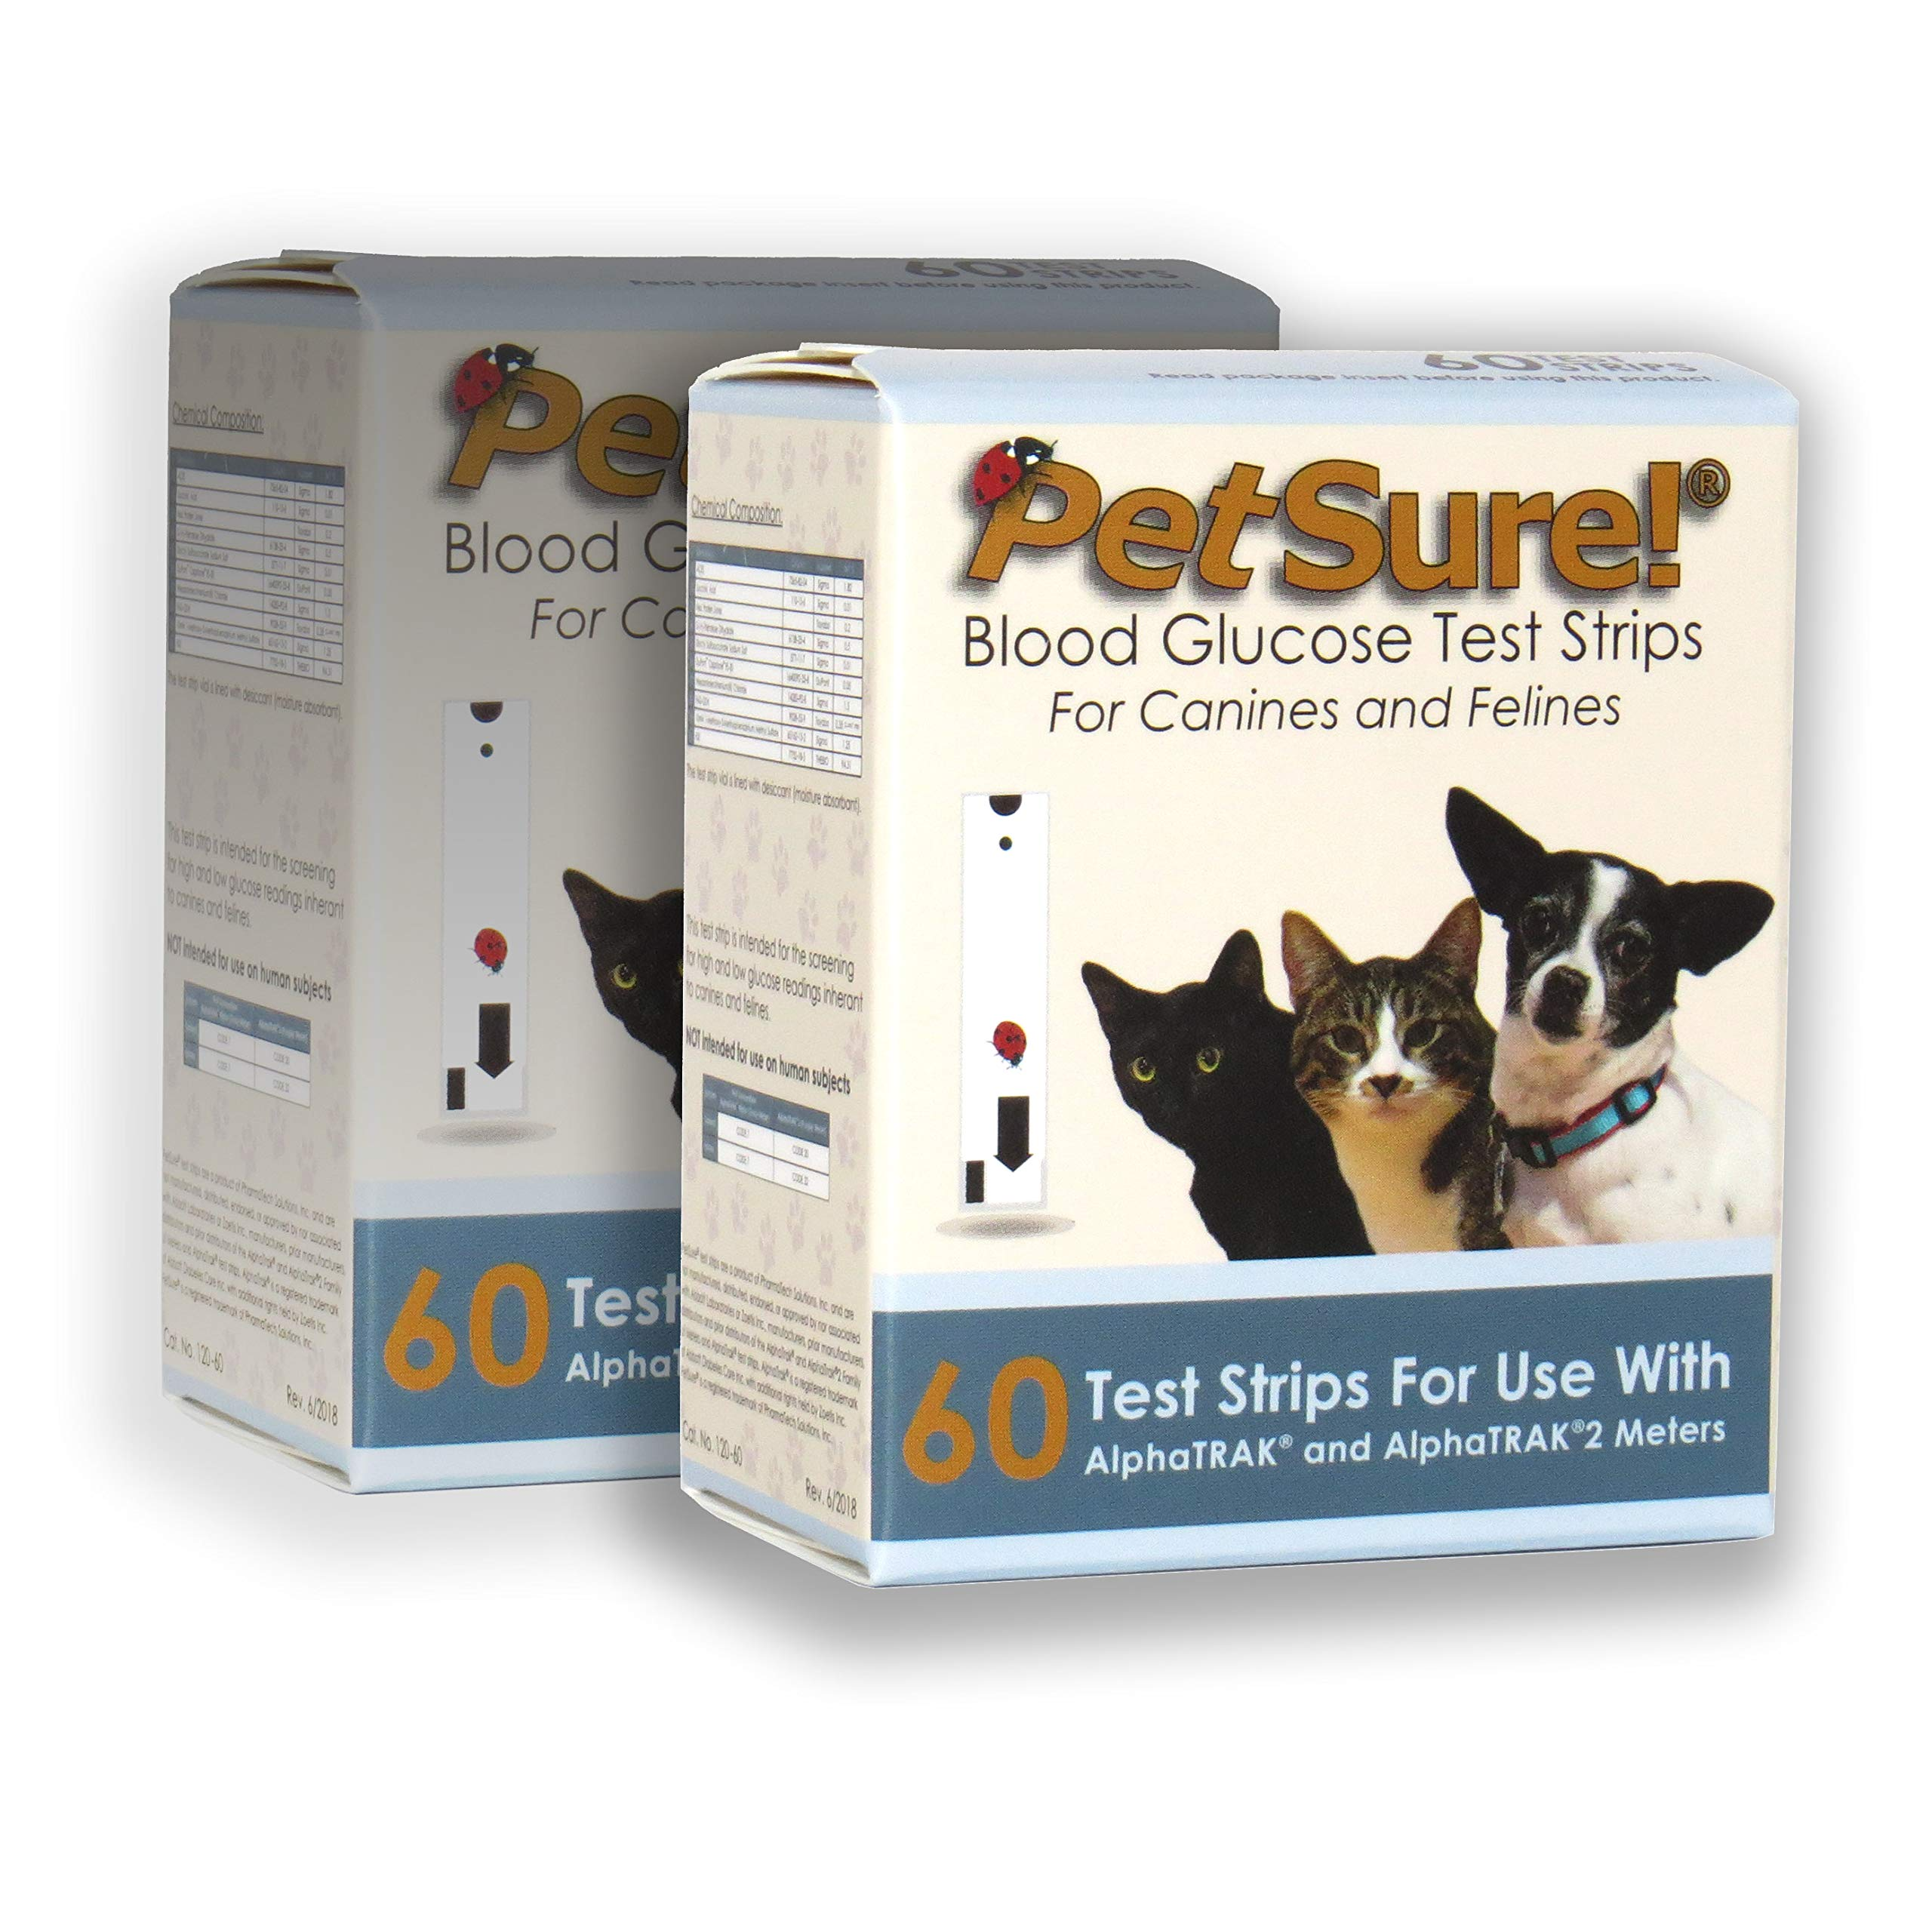 PetSure! Test Strips 60ct - Pack of 2 by PetSure! (Image #1)